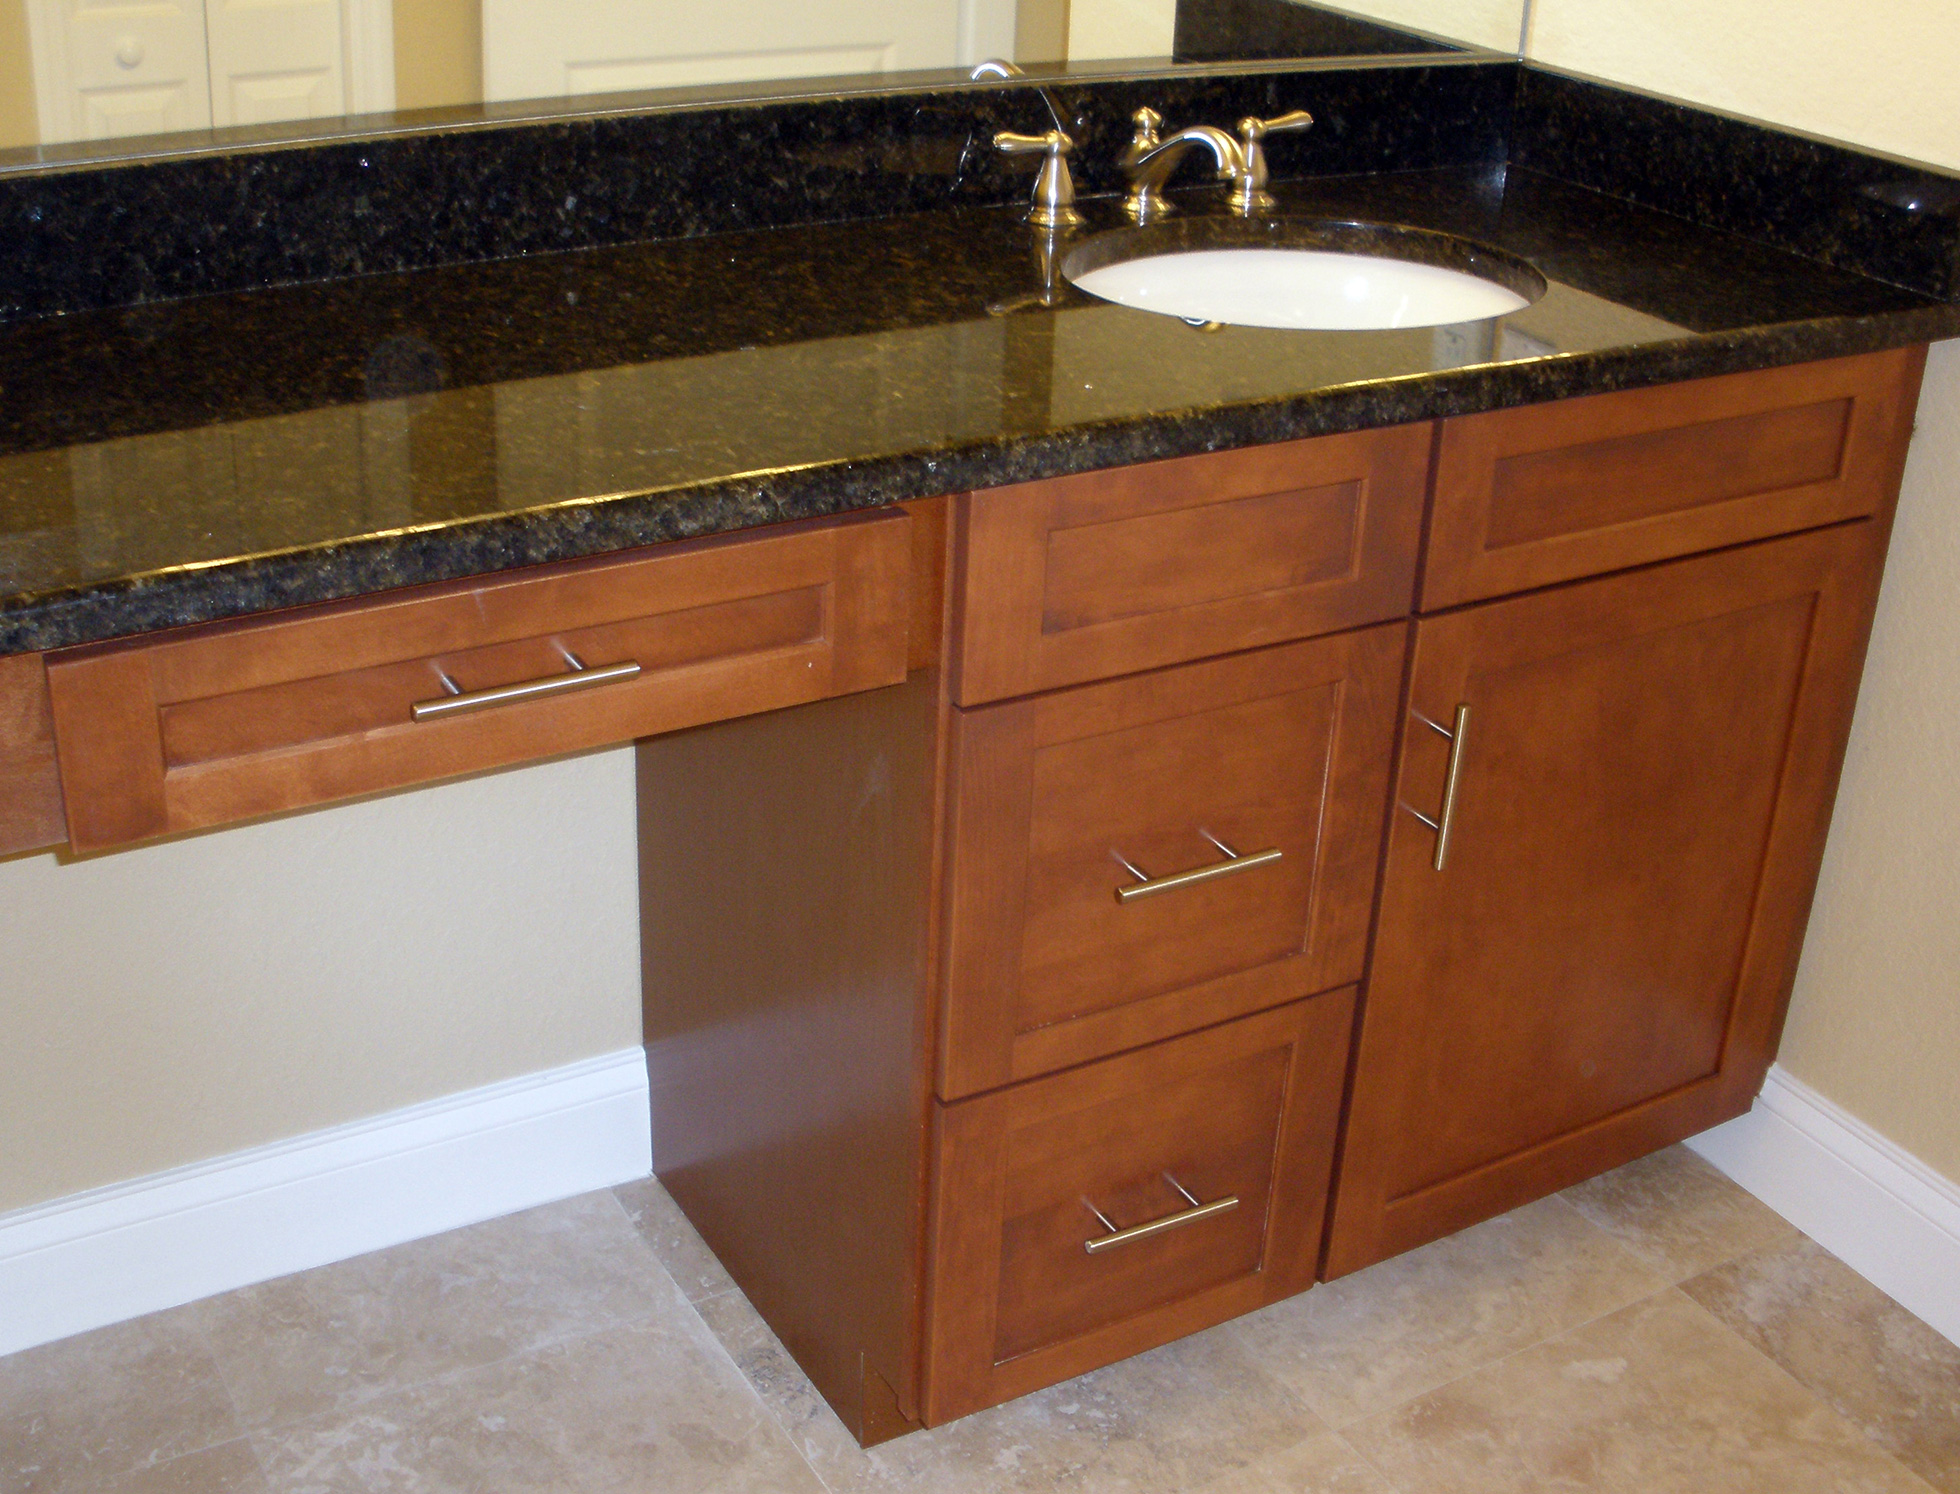 single design bathroom redoubtable the trendy vanity cabinet sink vanities inspiration lowes cabinets fancy on ideas in